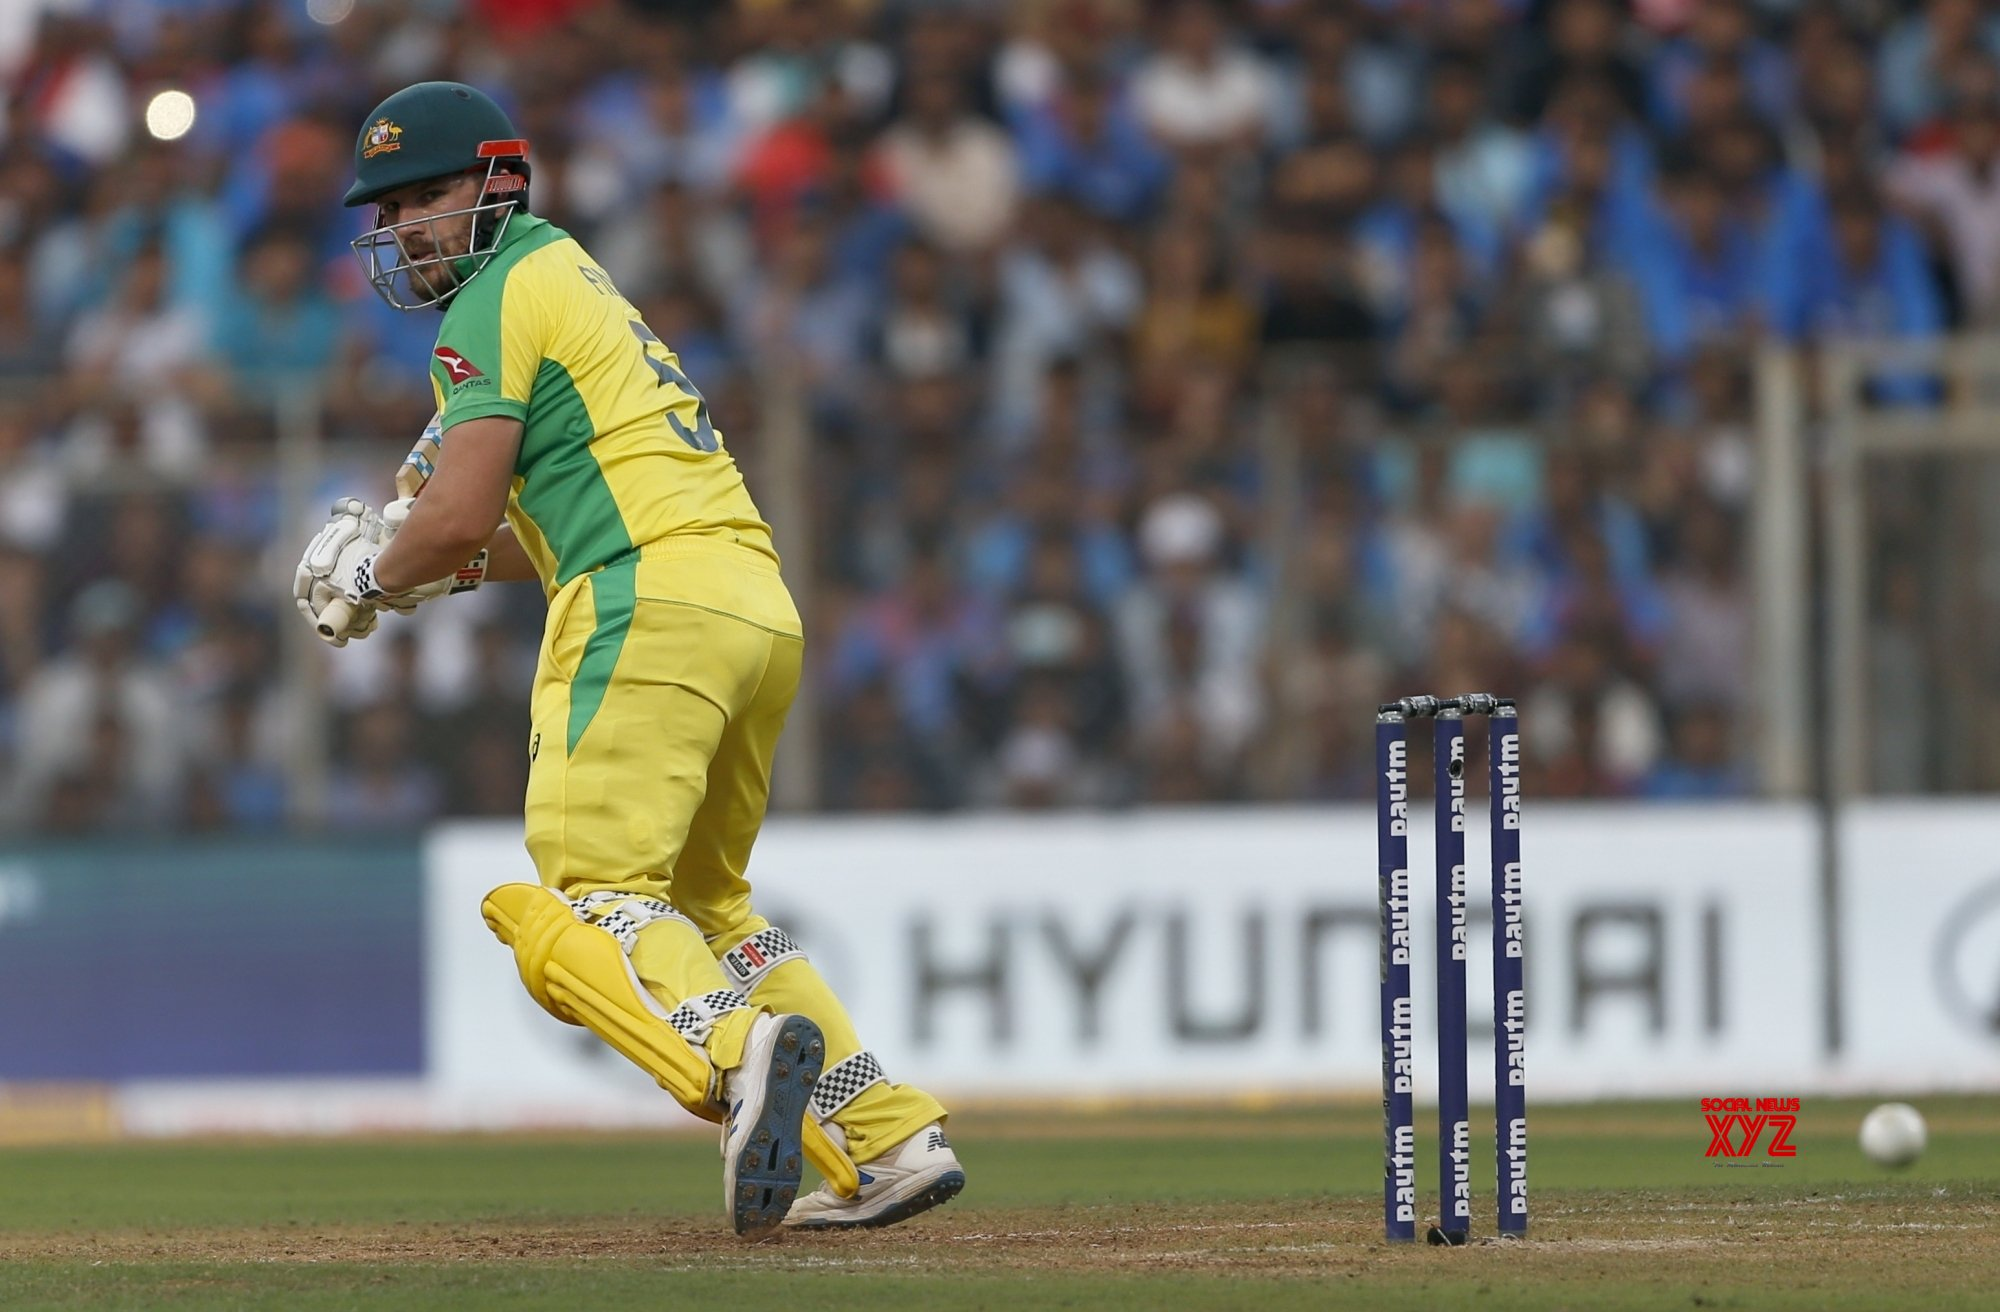 Mumbai: 1st ODI - India Vs Australia (Batch - 29) #Gallery